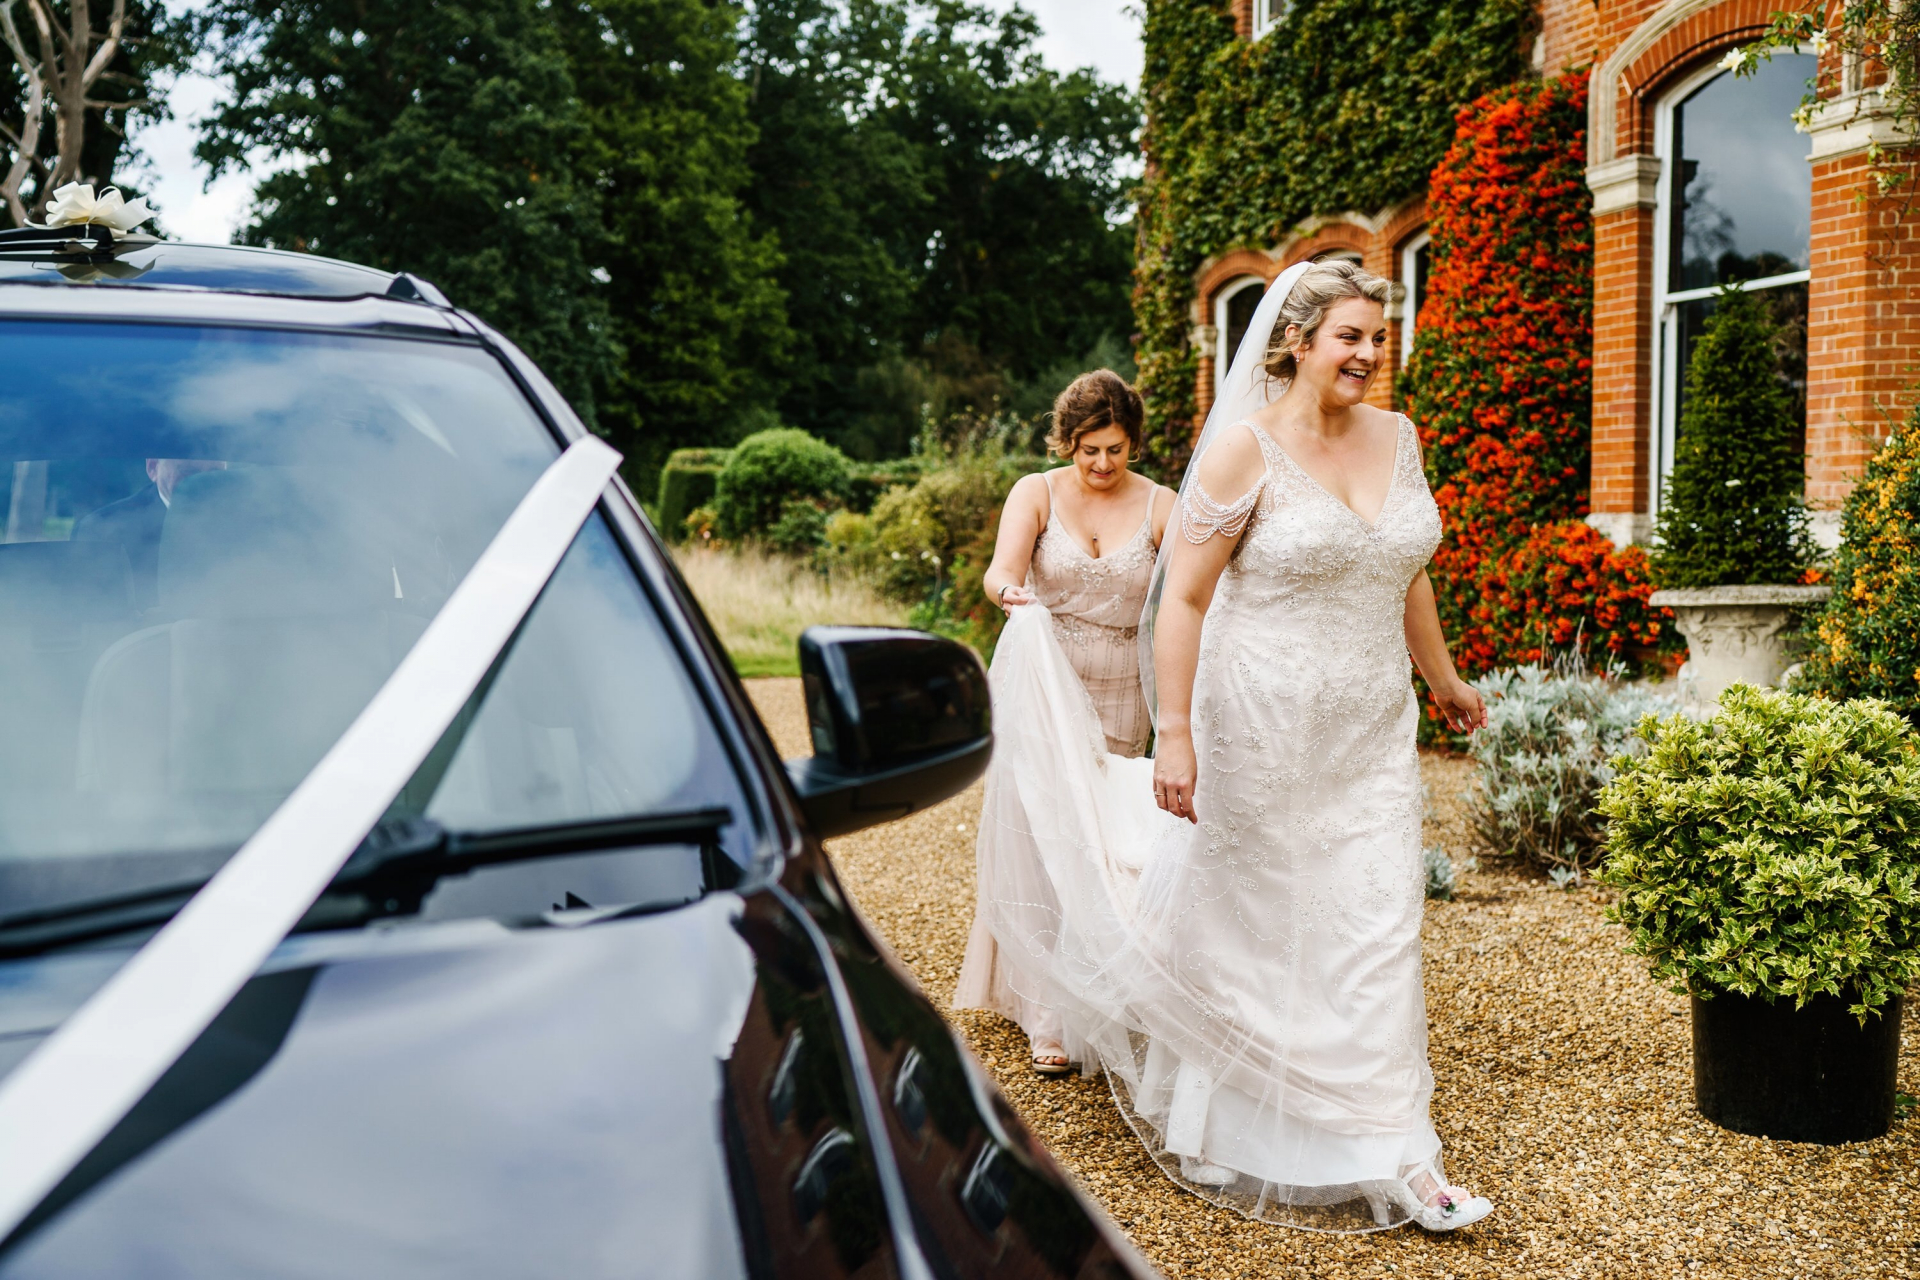 Gunthorpe Hall Wedding Photography | one of the bridesmaids helps the bride with her train as she walks along a gravel path